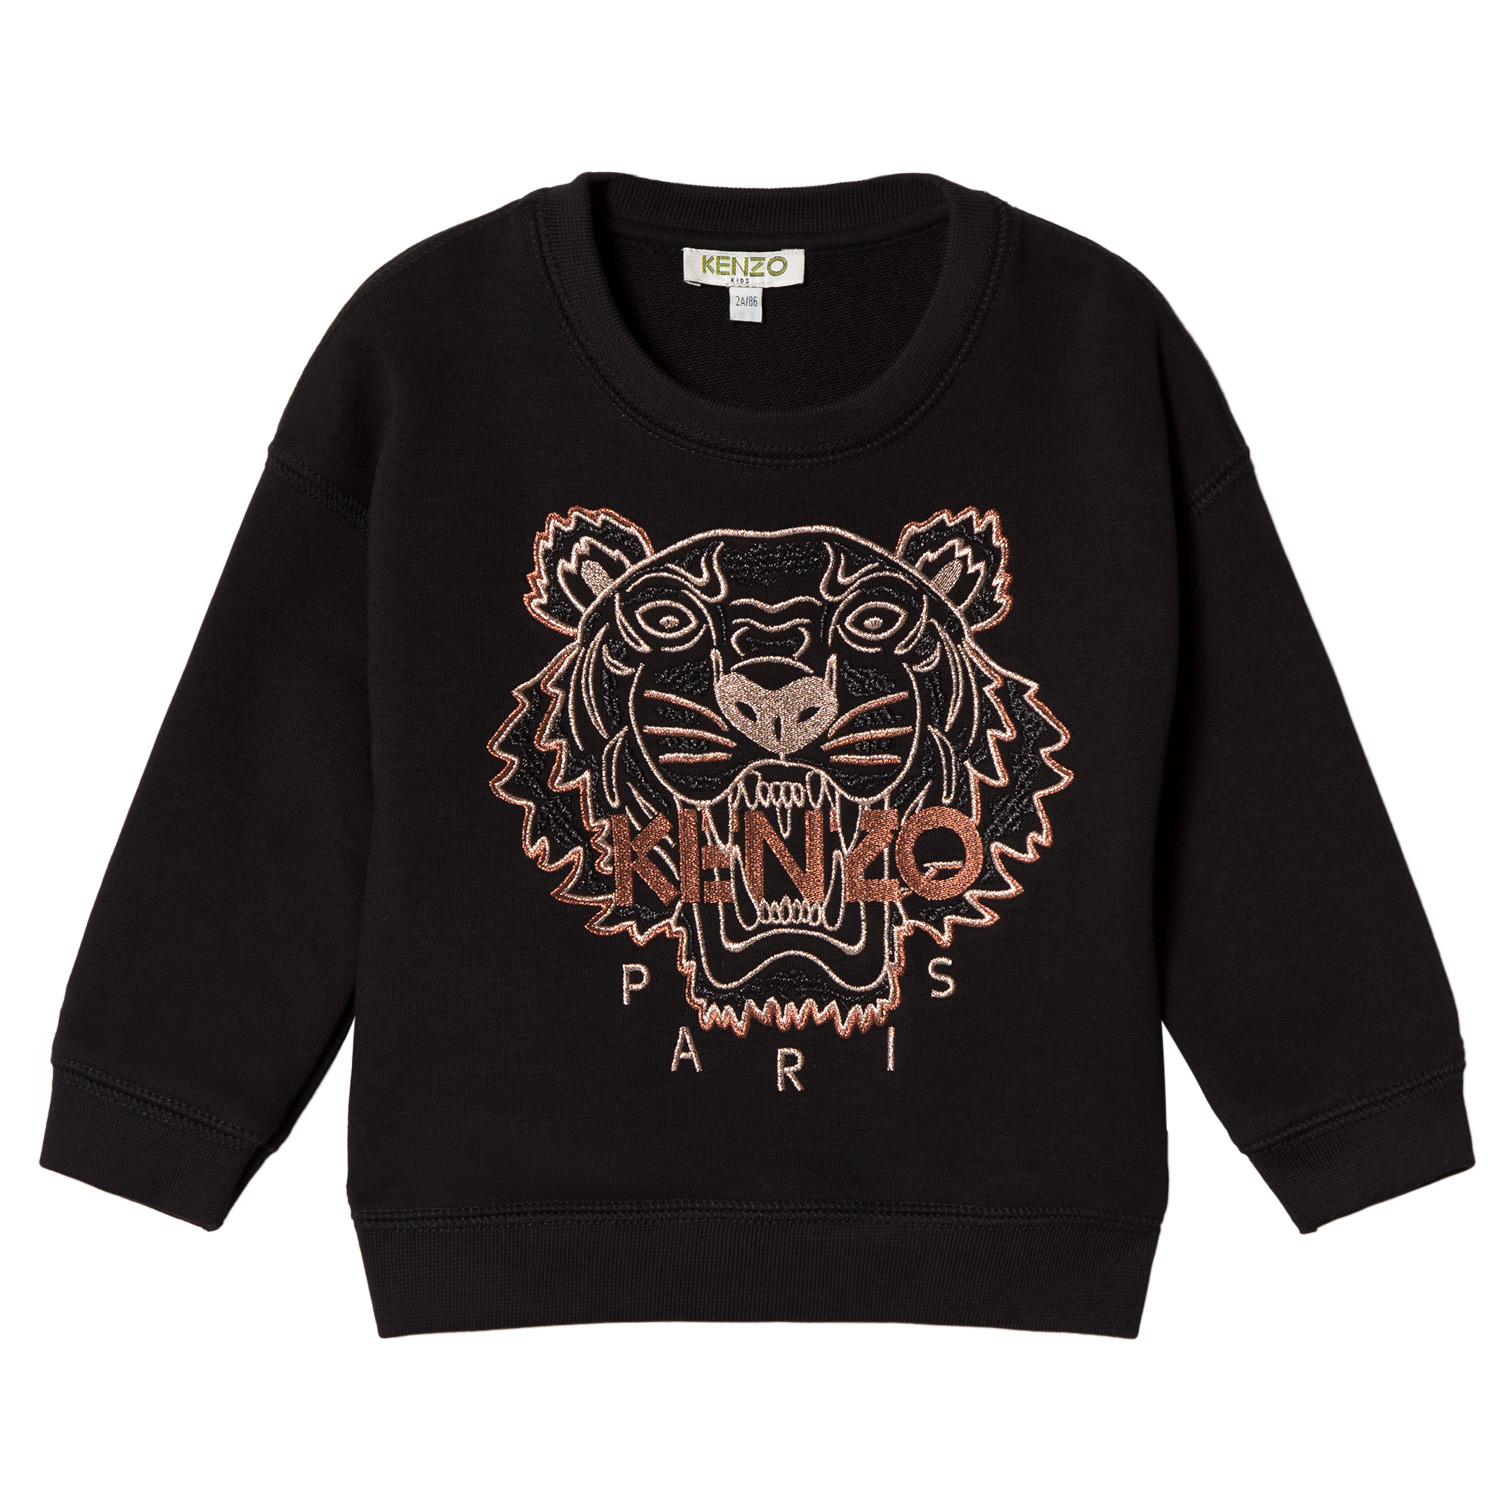 0d99d65d Kenzo Kids Black and Gold Embroidered Tiger Sweatshirt | AlexandAlexa